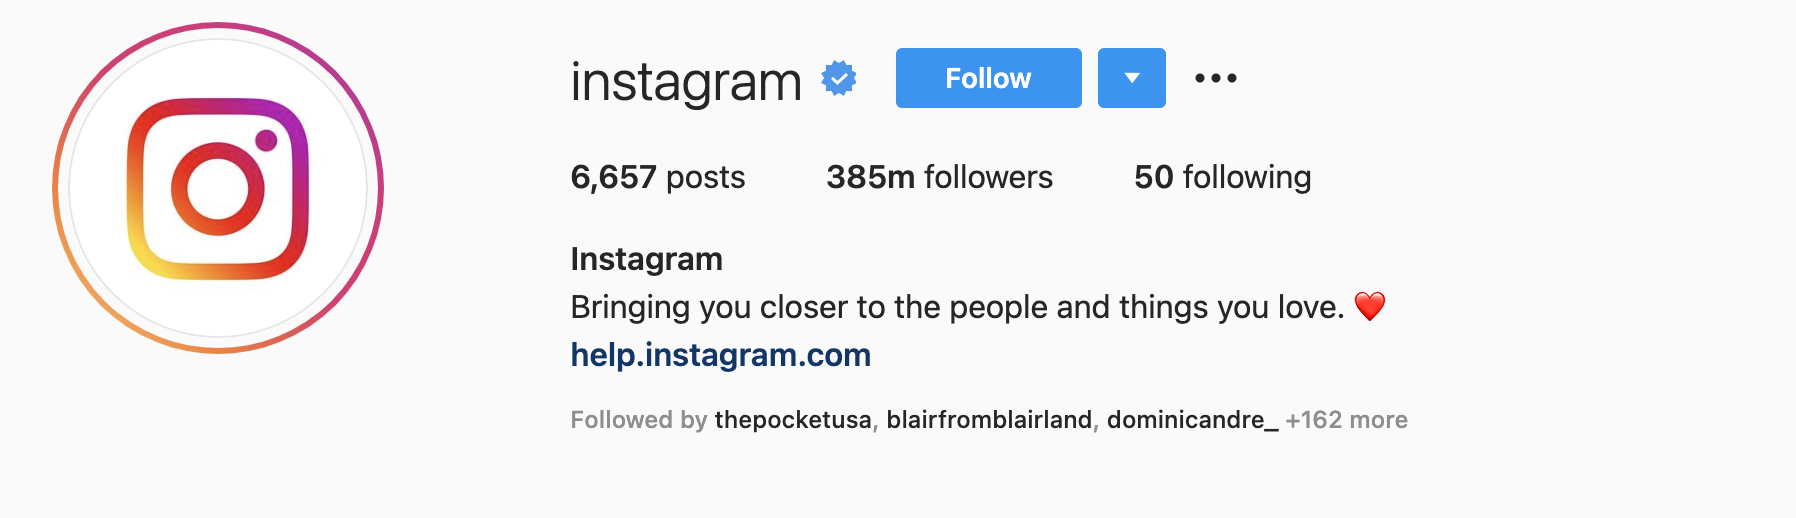 How to create an Instagram bio